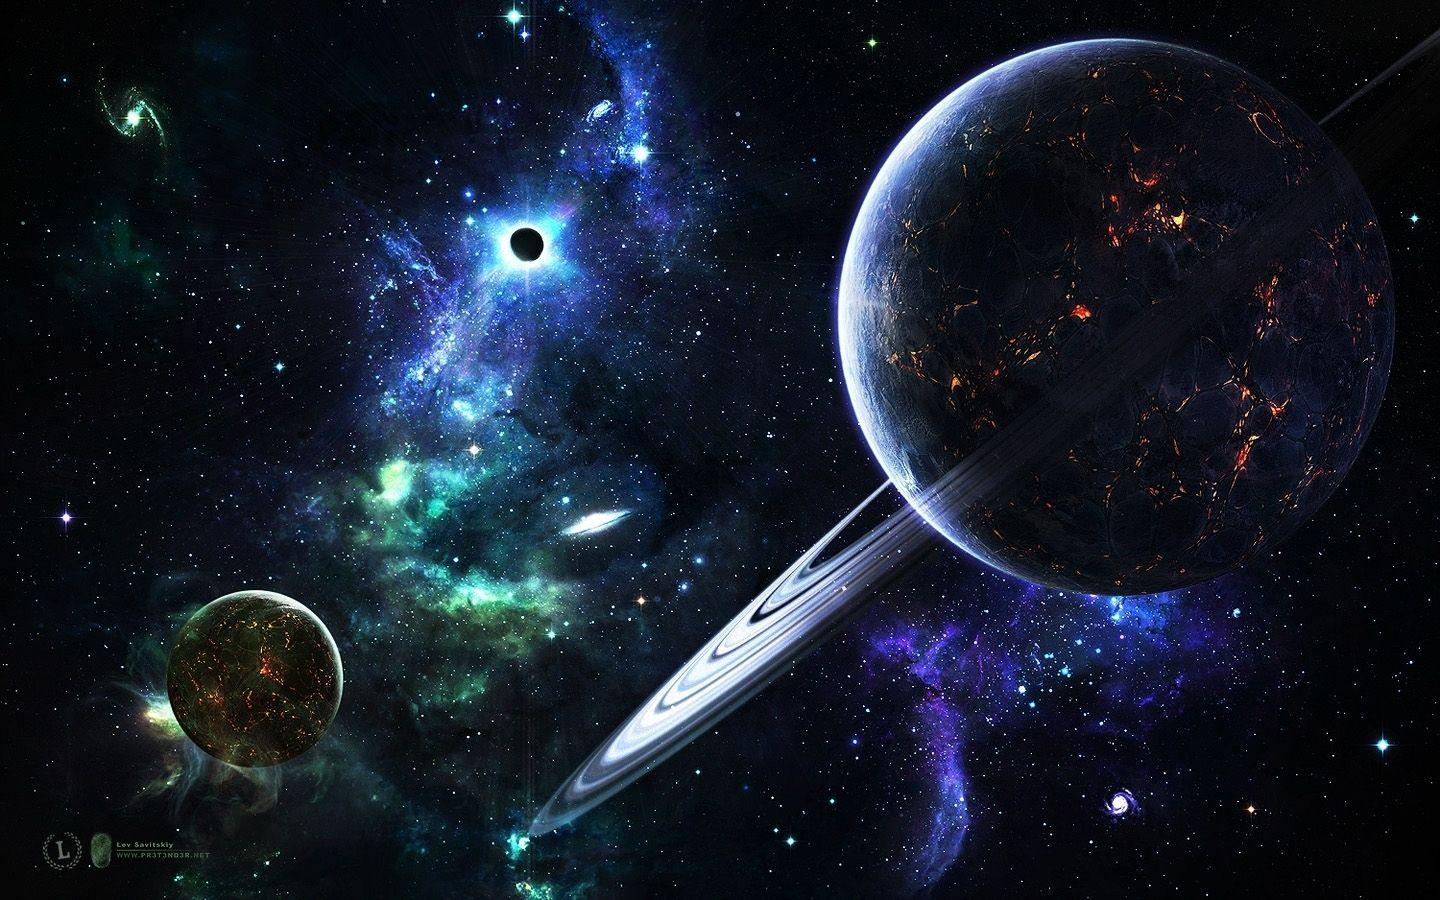 Hd Outer Space Wallpaper: Outer Space HD Wallpapers